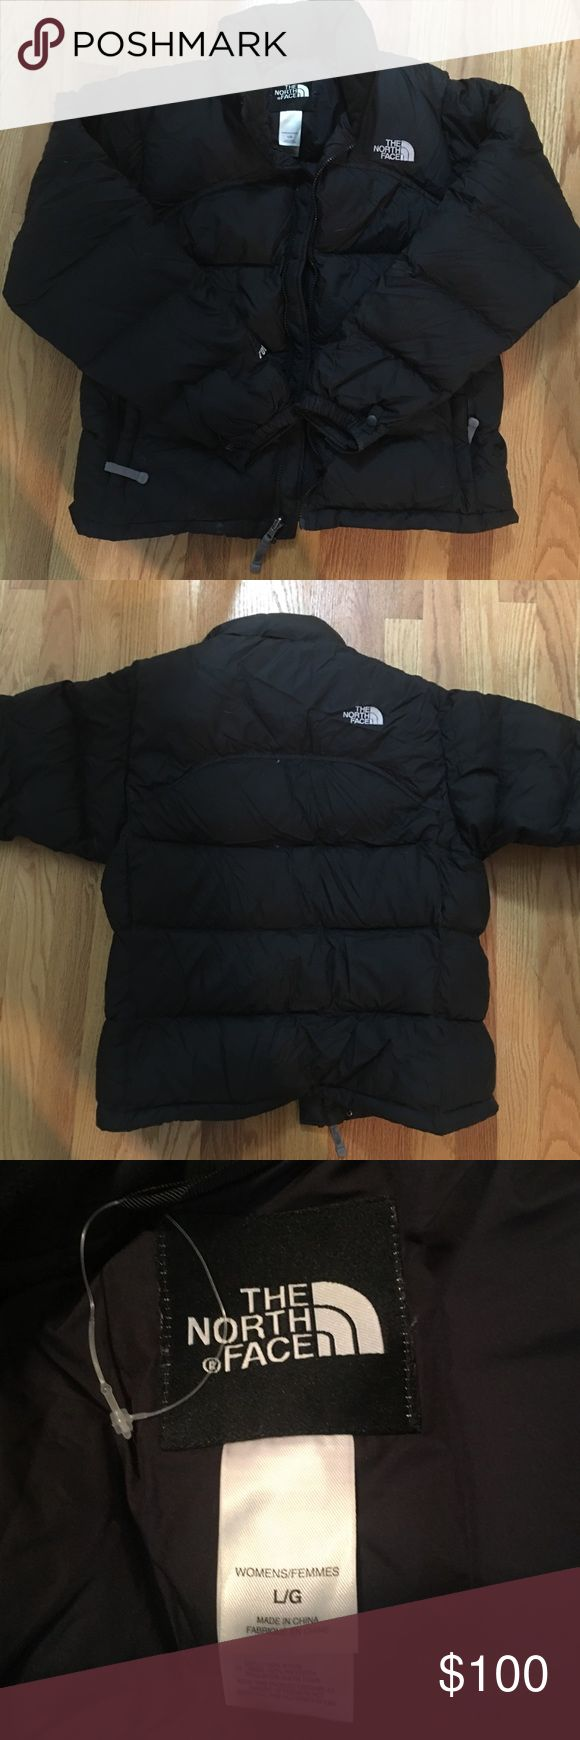 The North Face 700 Nuptse Puffer Jacket Women's L Black North Face Nuptse jacket in like new condition. Super warm and barely worn!! Open to reasonable offers made via the offer button. 😊 The North Face Jackets & Coats Puffers